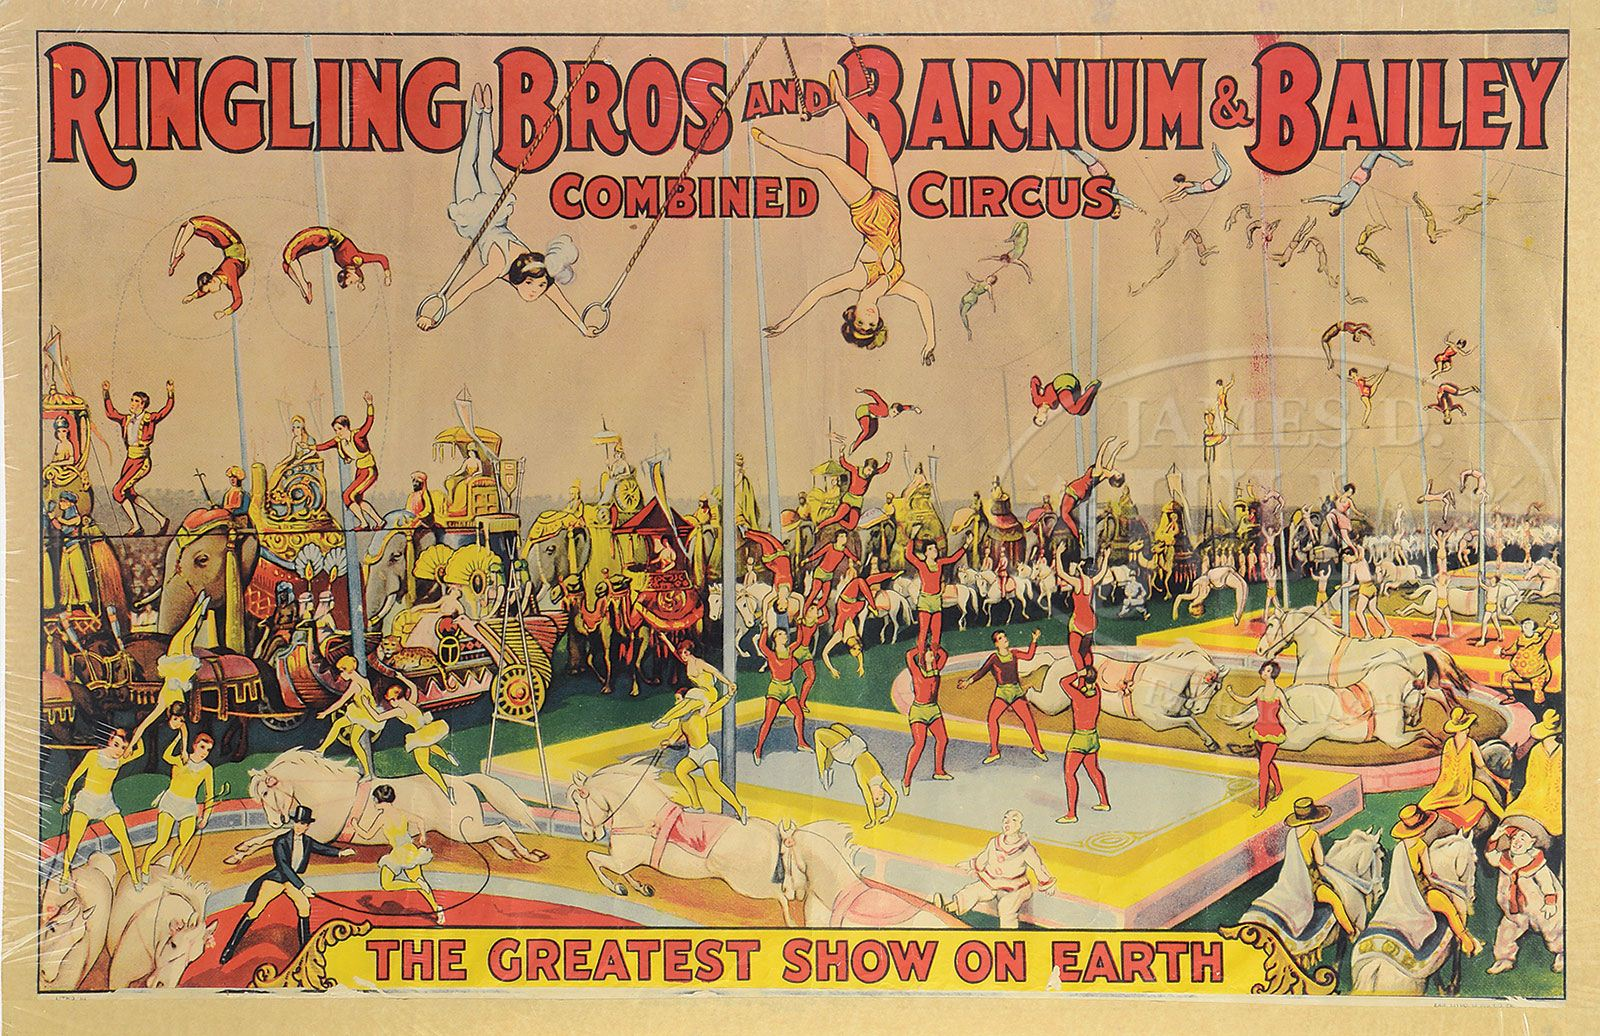 5 RINGLING BROTHERS/BARNUM & BAILEY CIRCUS POSTERS